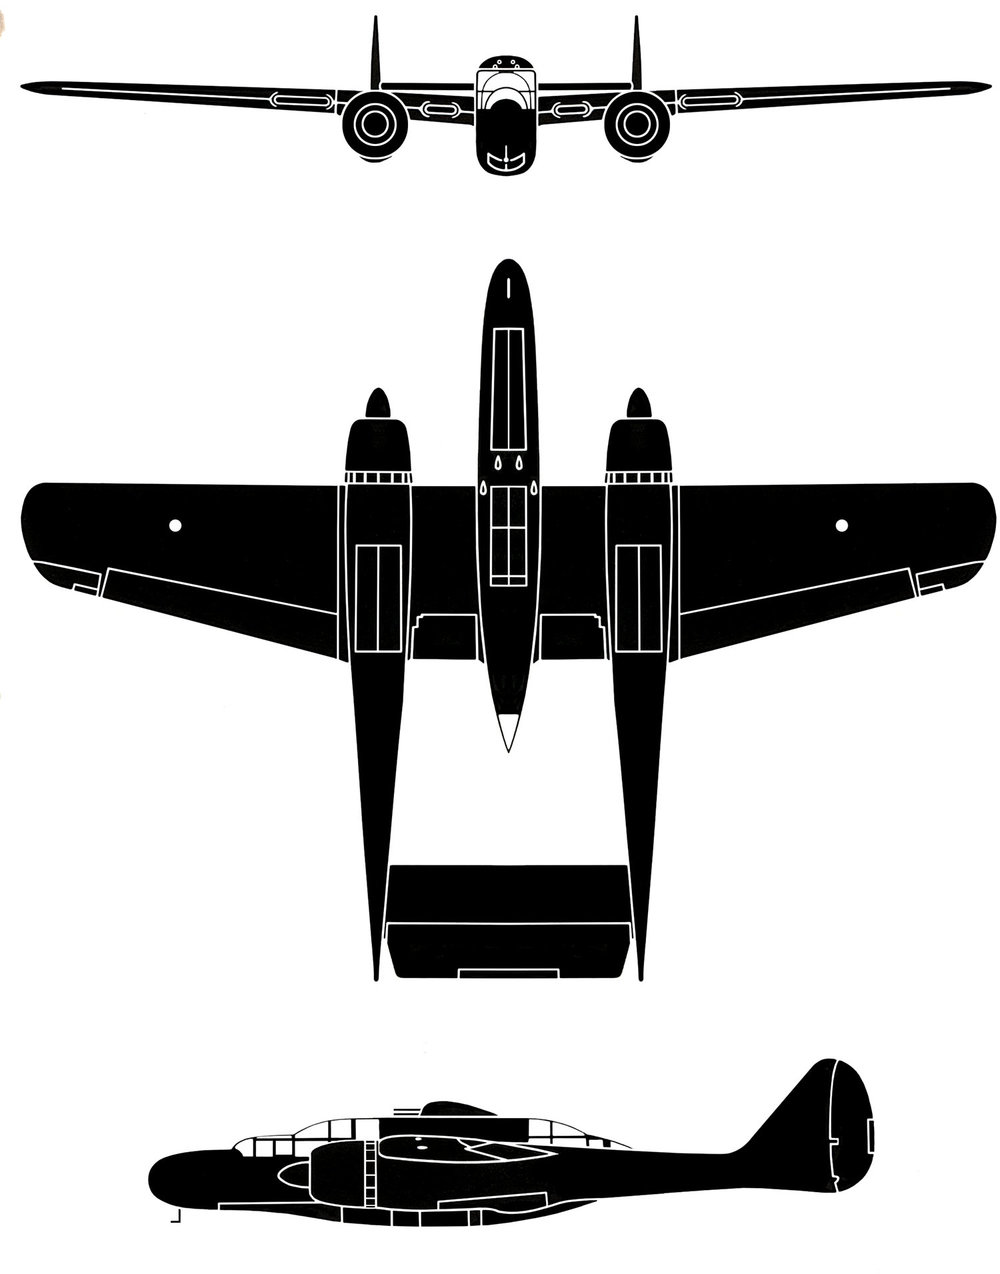 P-61 Blackwidow